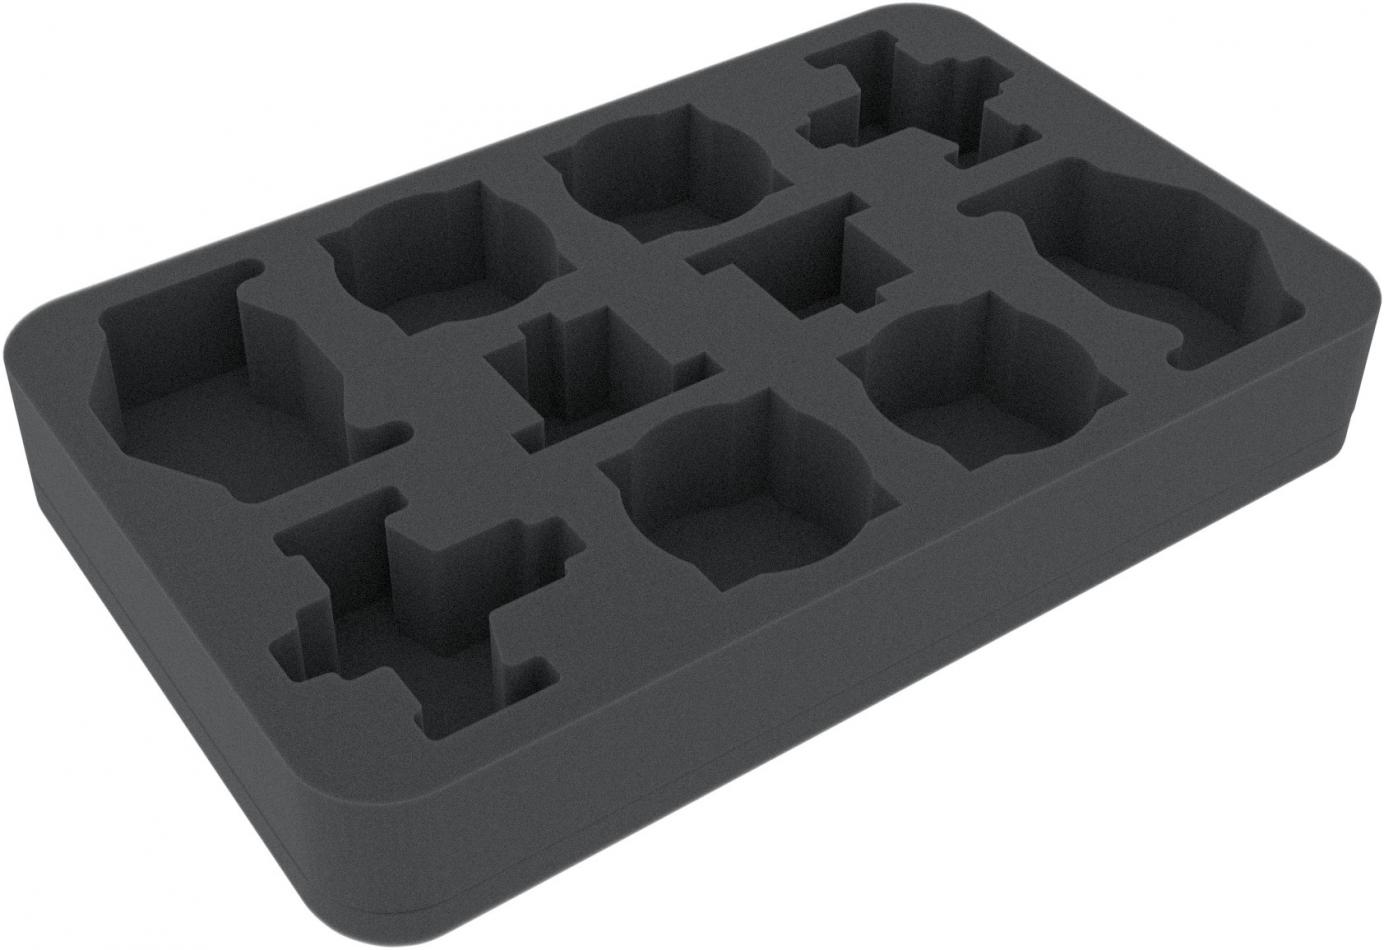 HSMEAH040BO 40 mm foam tray for Star Wars X-Wing Kimogila Fighter, Quadjumper and H-6 Scurrg Bomber